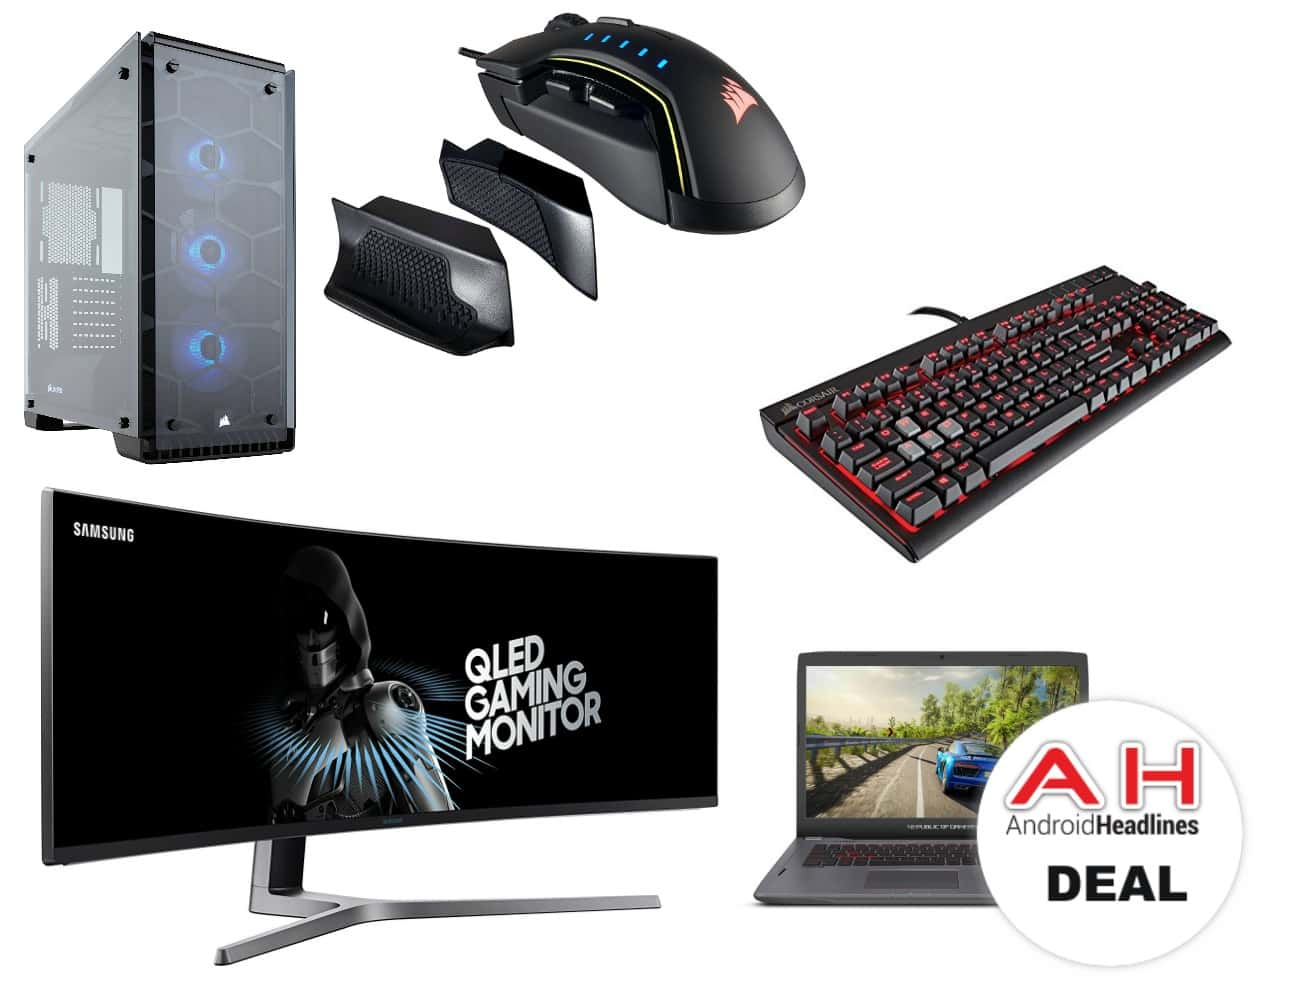 deal amazon discounts gaming pc accessories components more today only. Black Bedroom Furniture Sets. Home Design Ideas